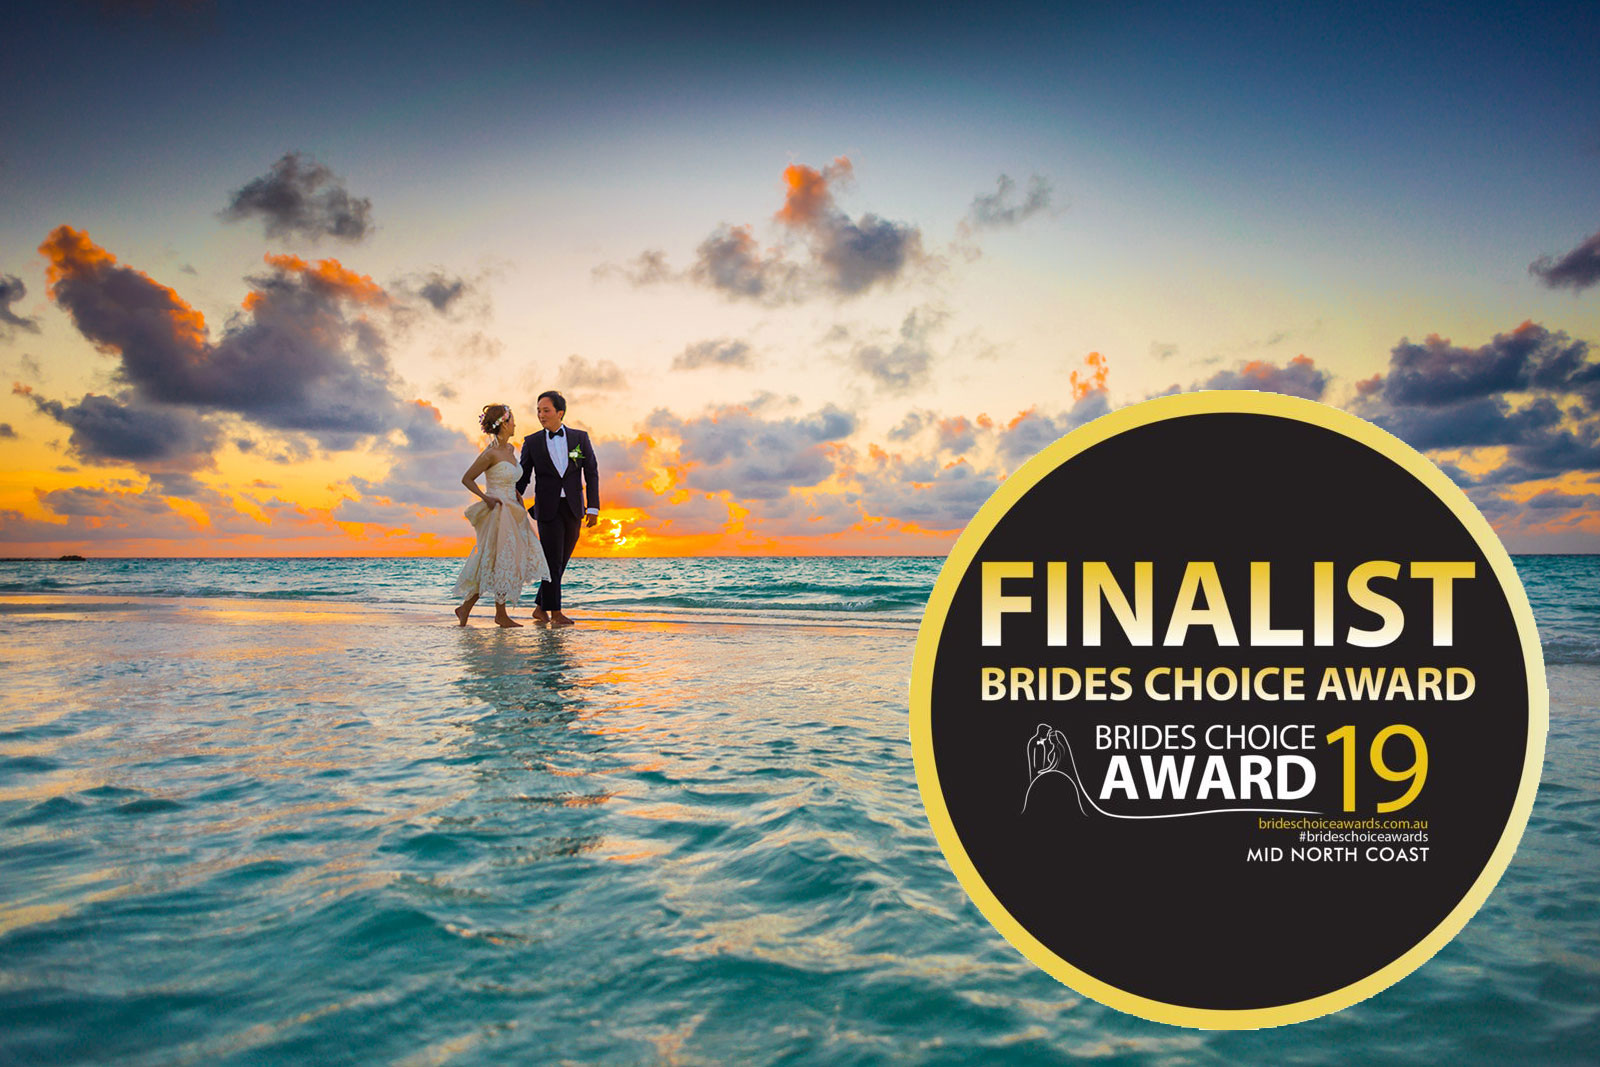 Julie Announced As A Finalist In The 2019 Brides Choice Awards